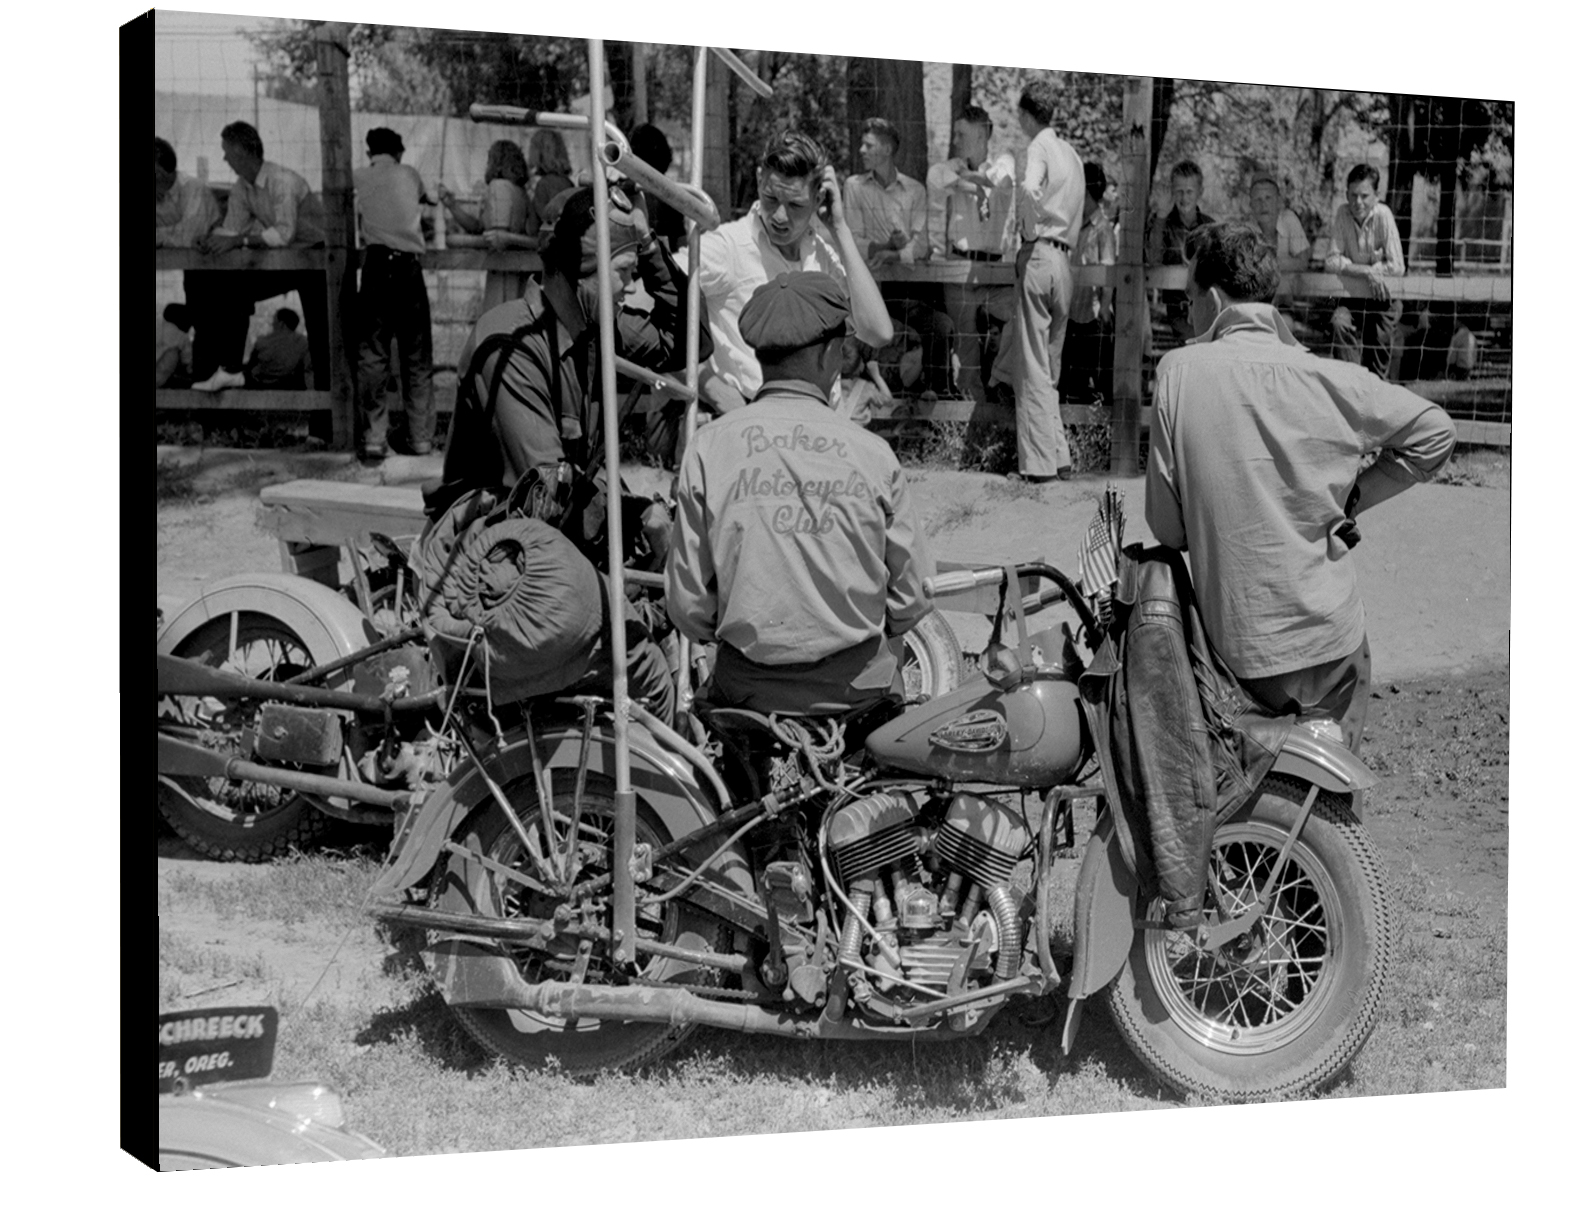 Baker Motorcycle Club 1938